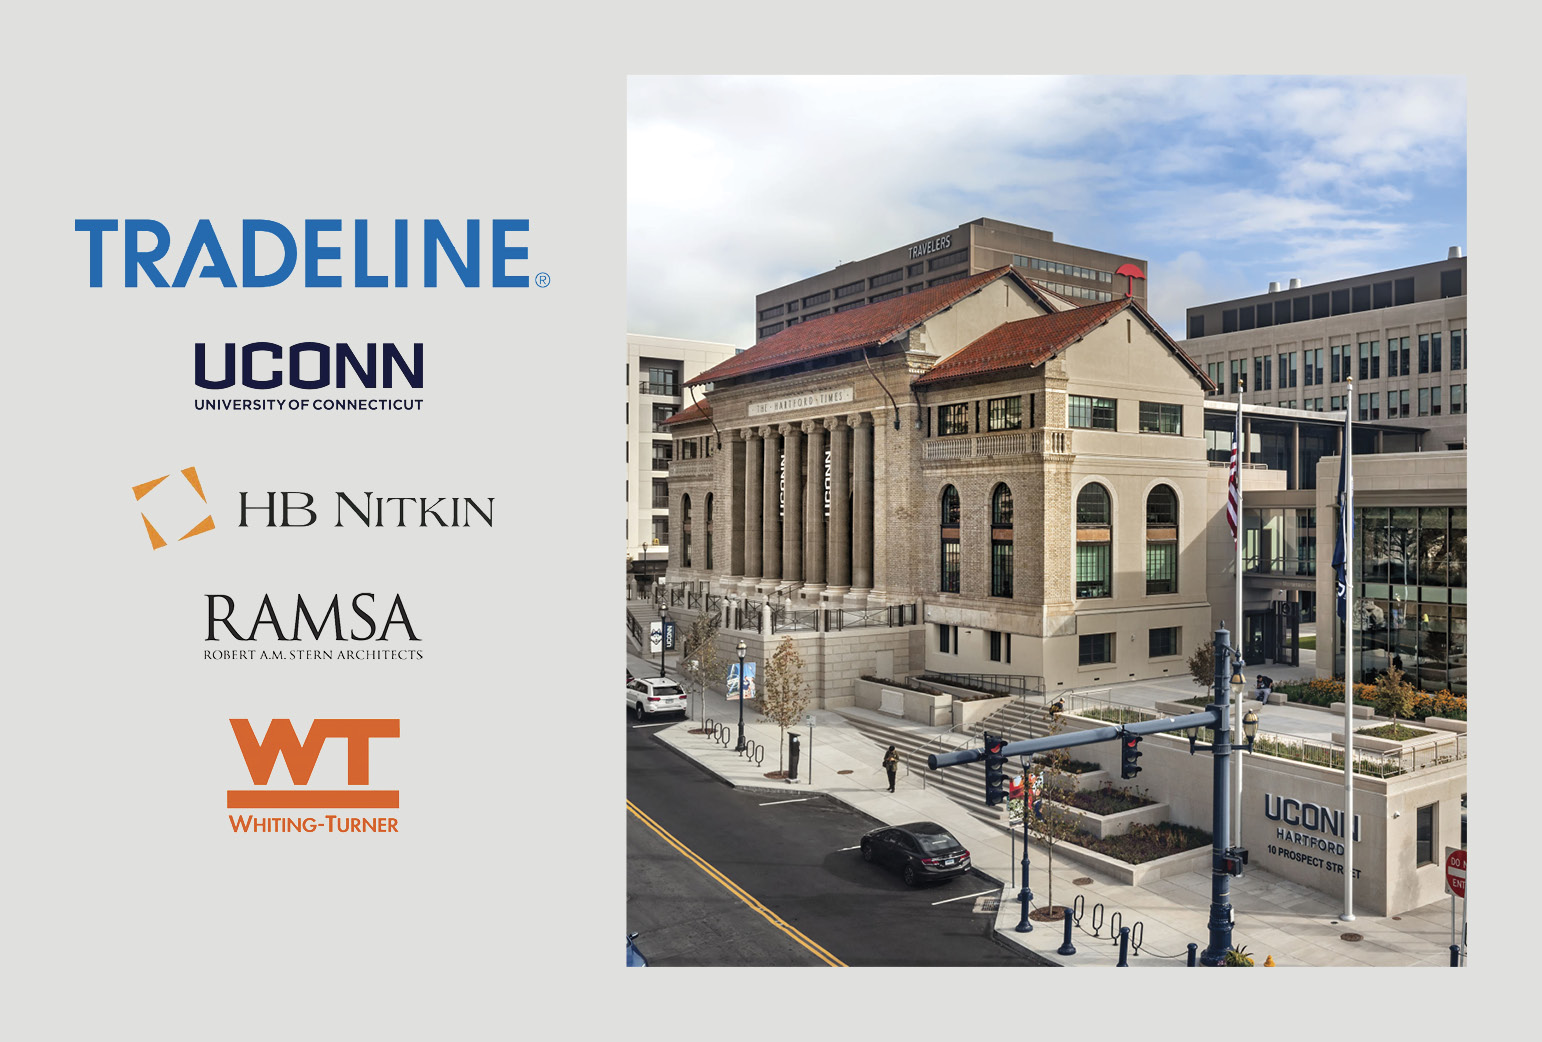 RAMSA Partner Preston J. Gumberich to Present at Tradeline's 2018 University Facilities Conference